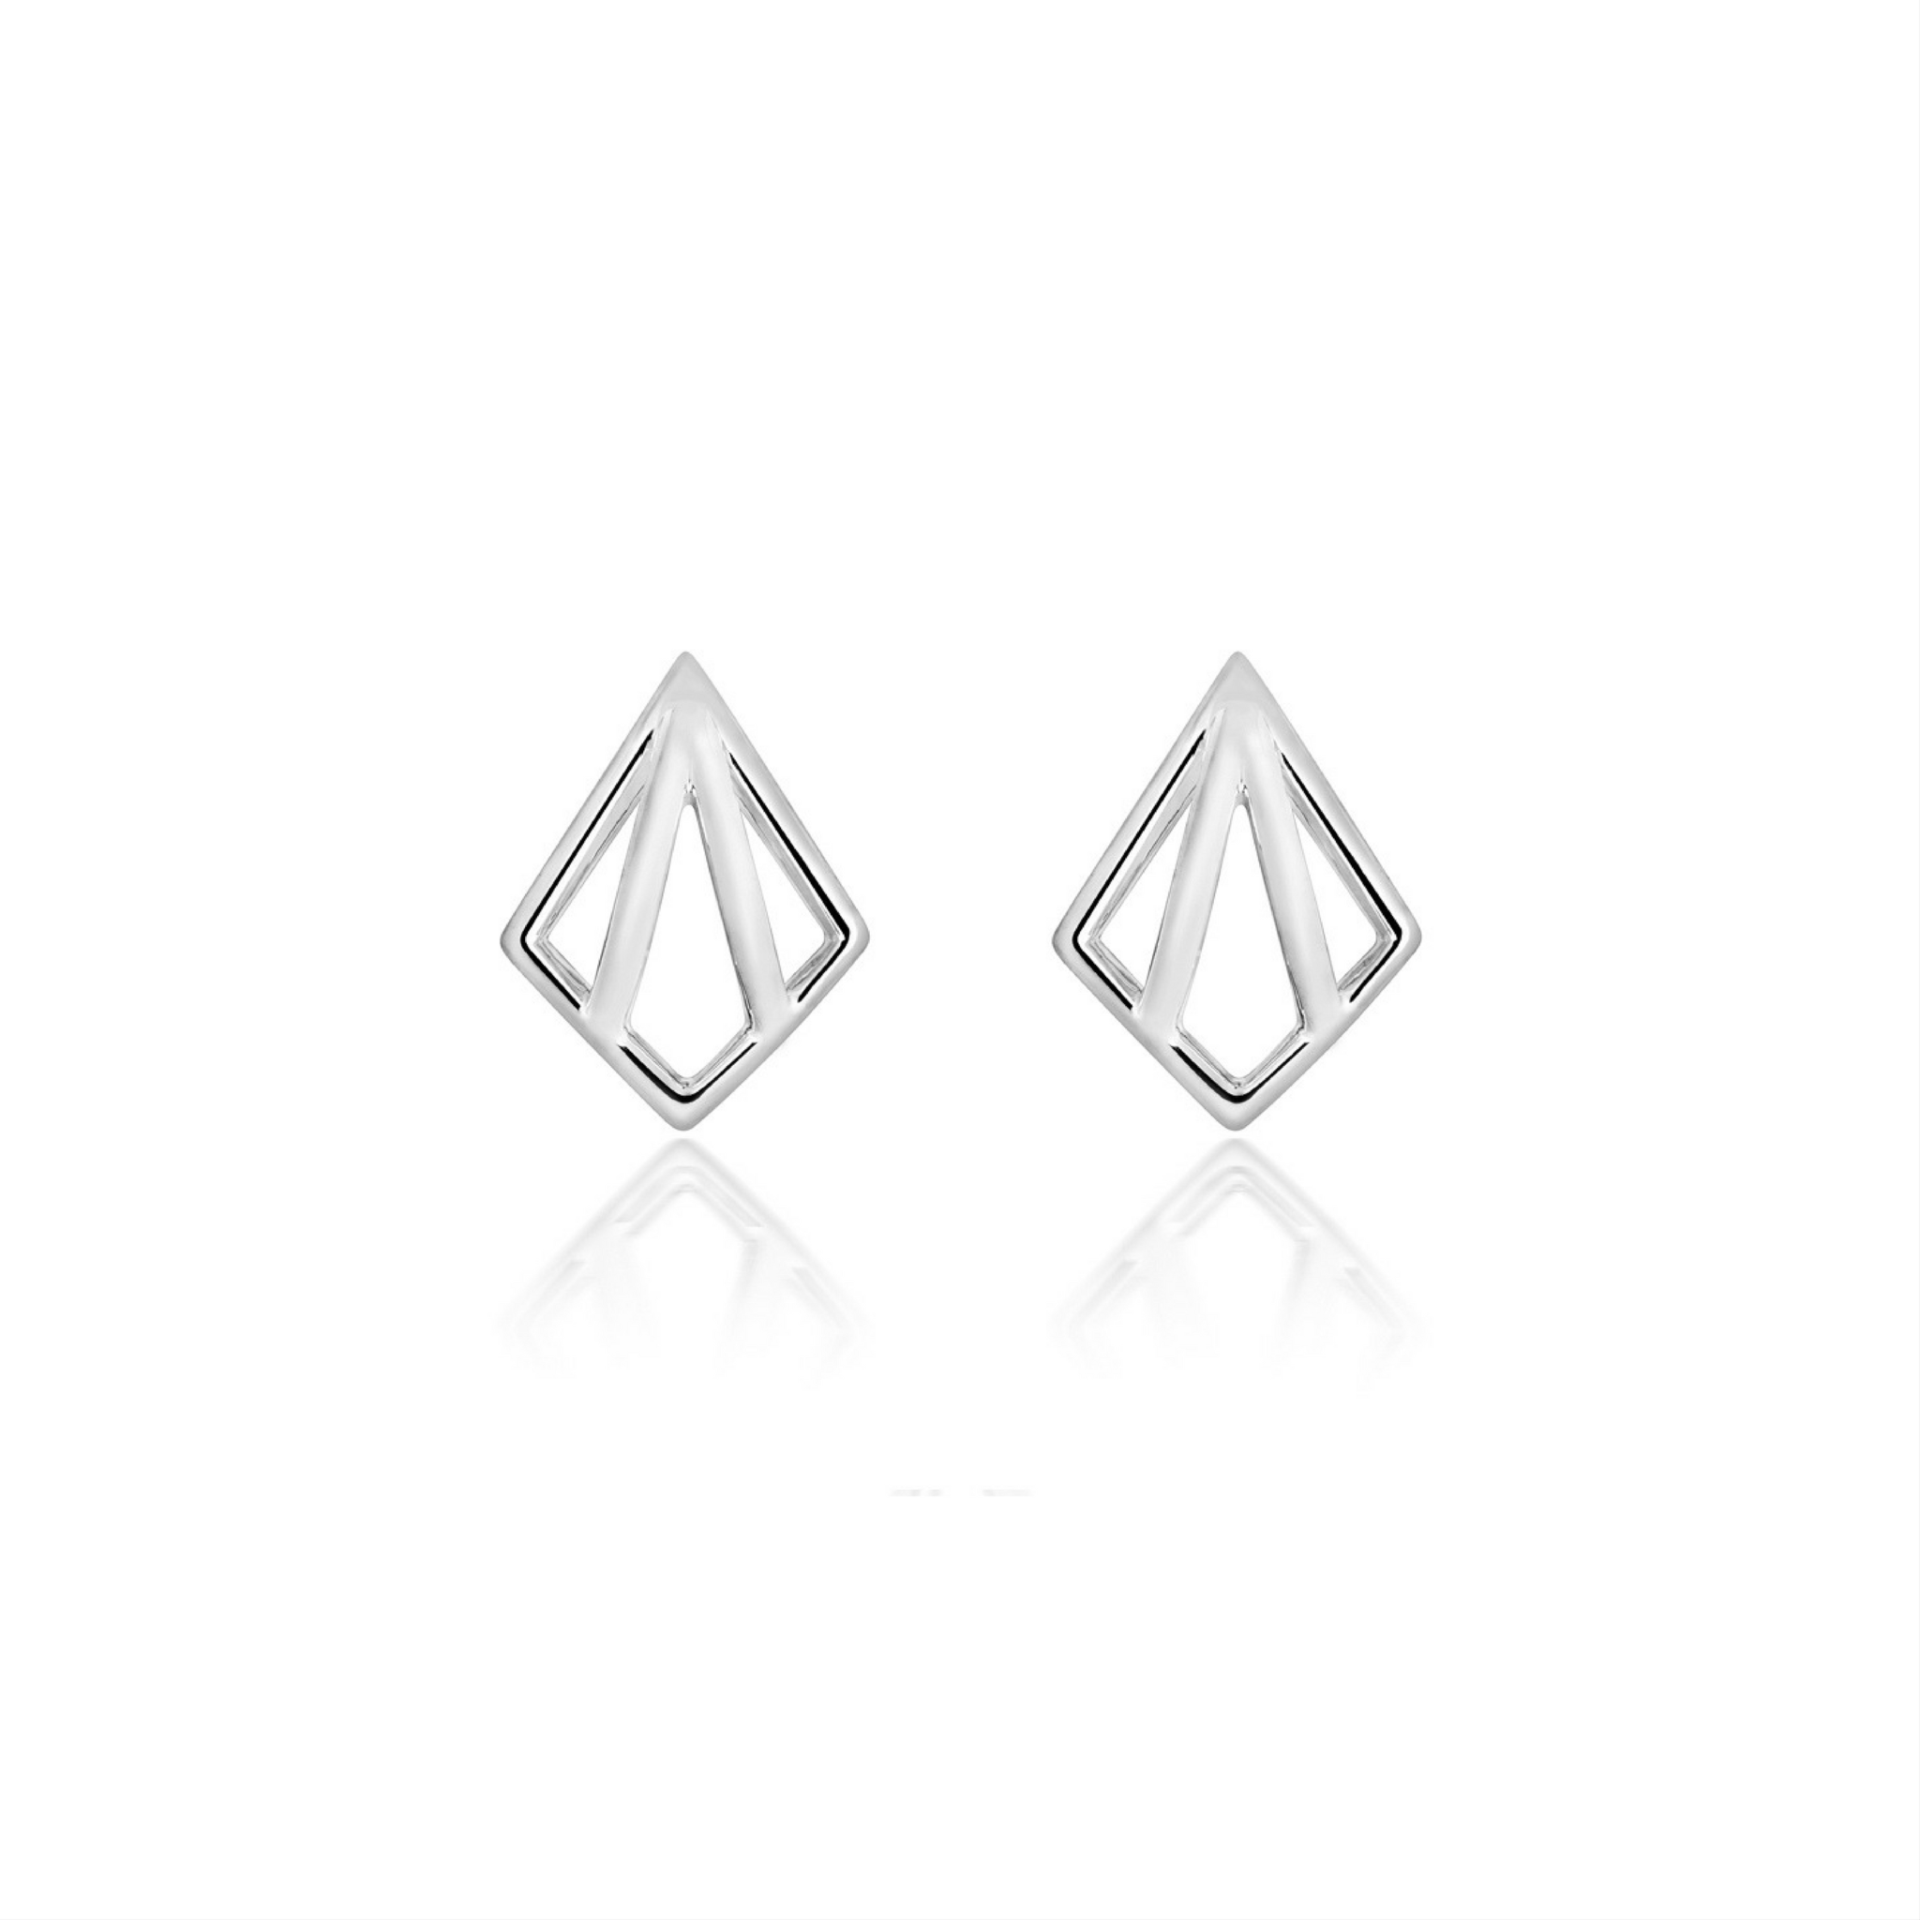 Nouveau Stud Earrings - CRED Jewellery - Fairtrade Jewellery - 1